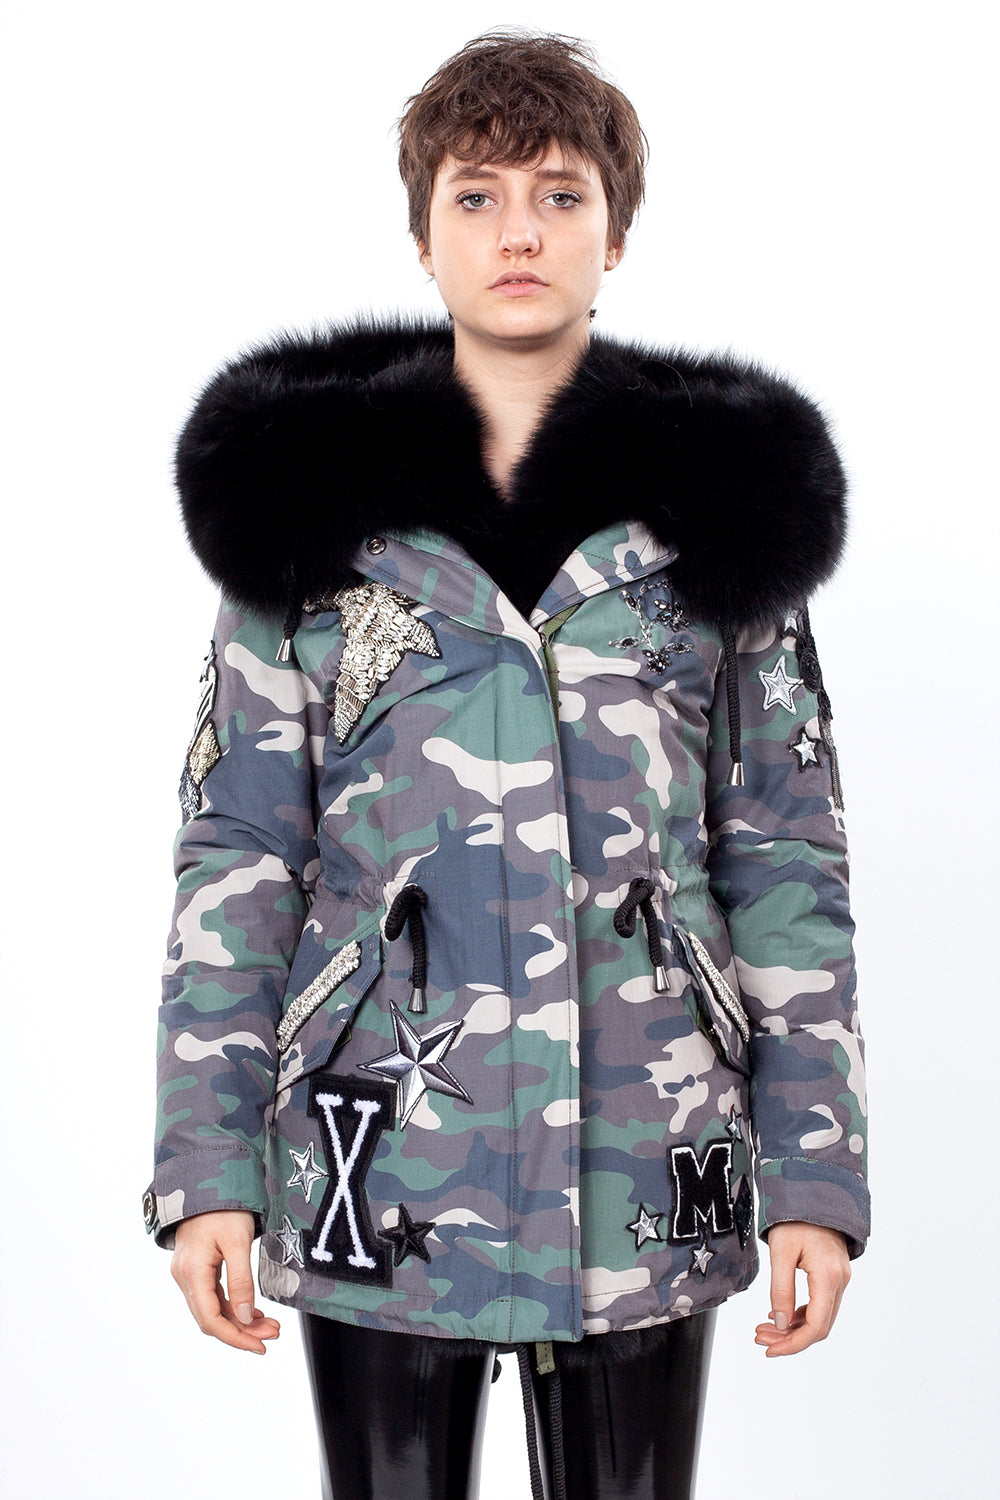 Green Camouflage Color Midi Parka Main Fabric is Waterproof / Raincoat Fabric With Black Blue Fox